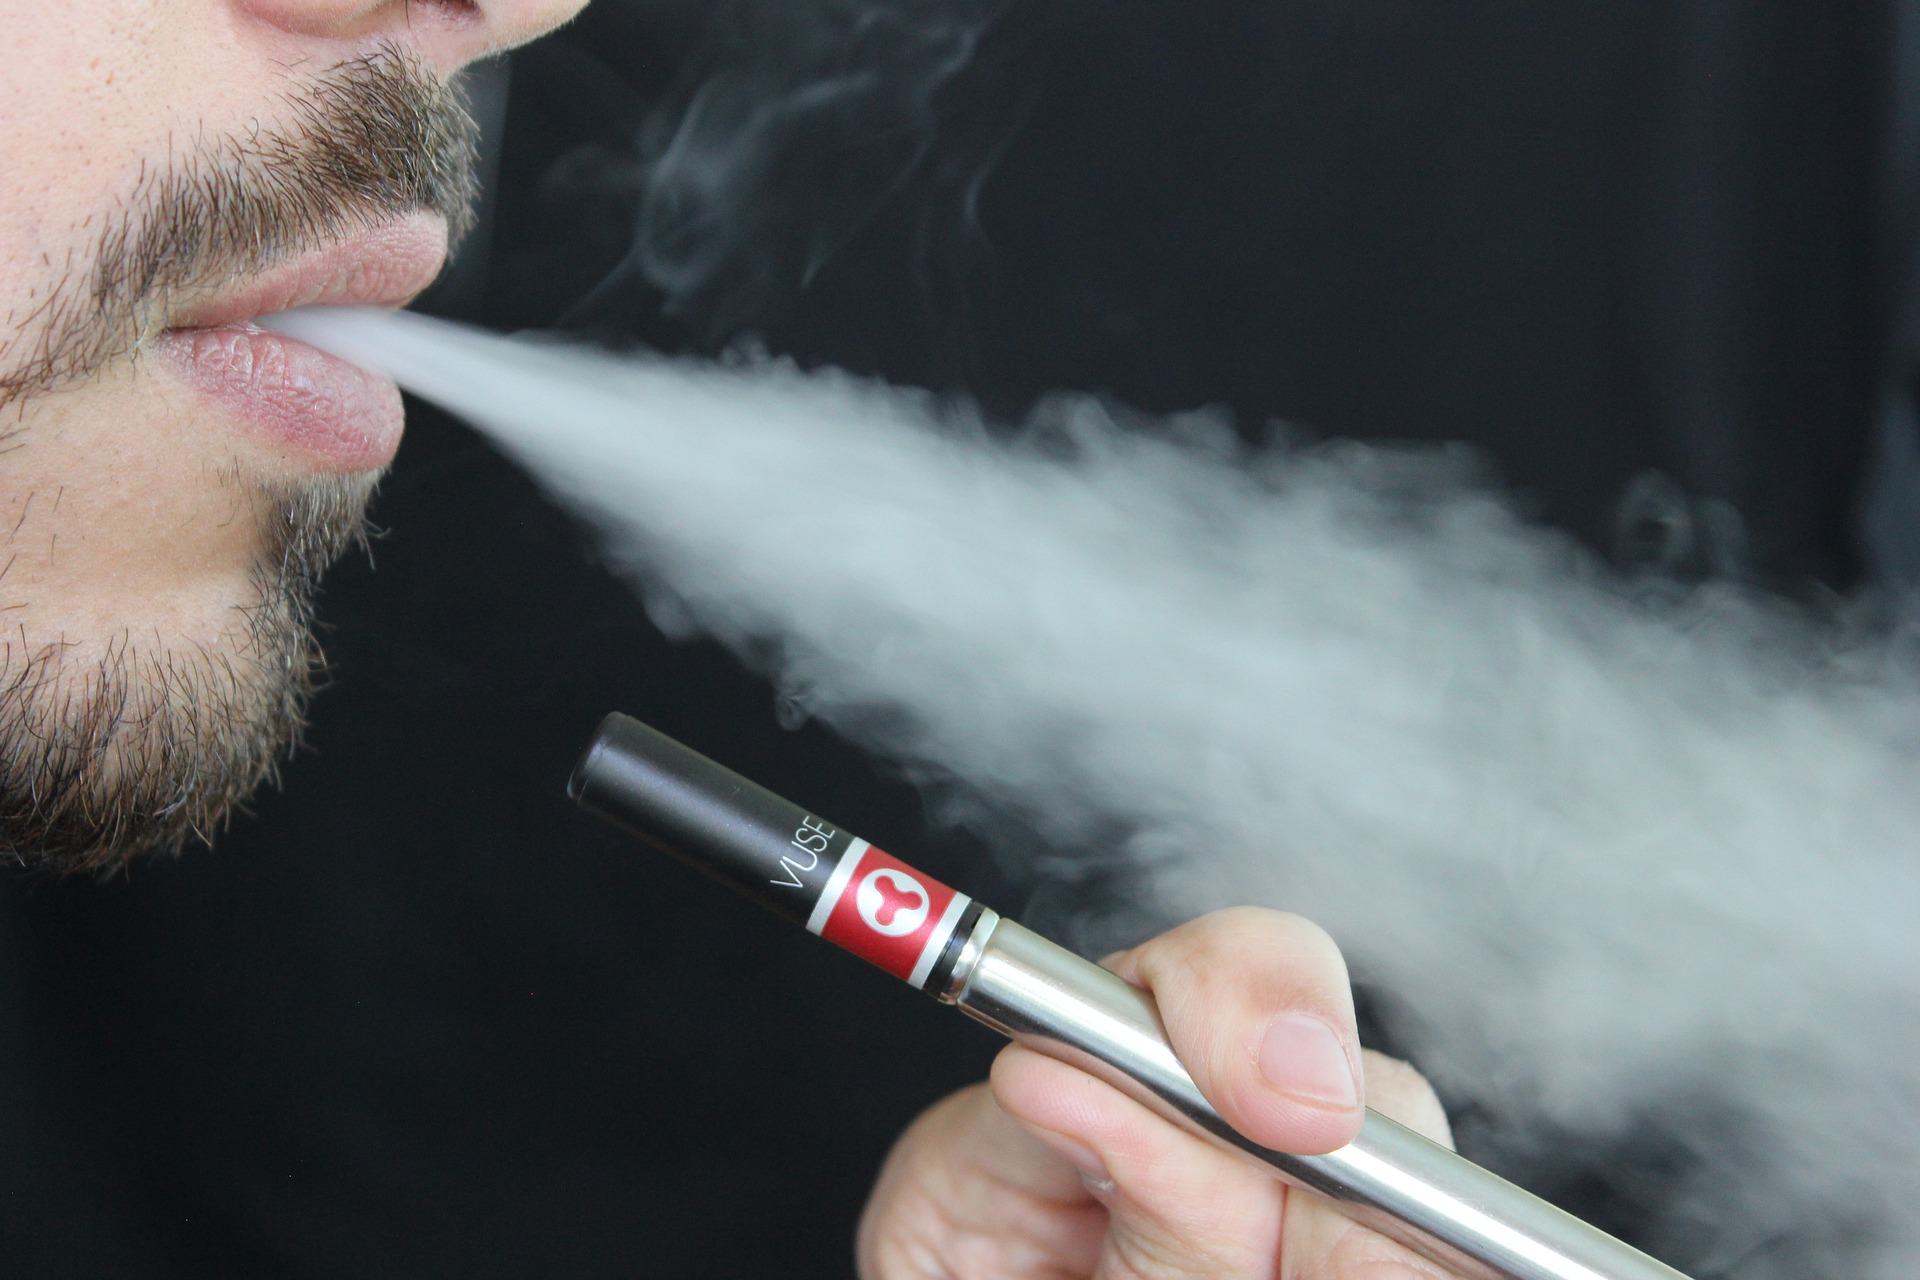 Australian health and medical authorities speak out on vaping risks